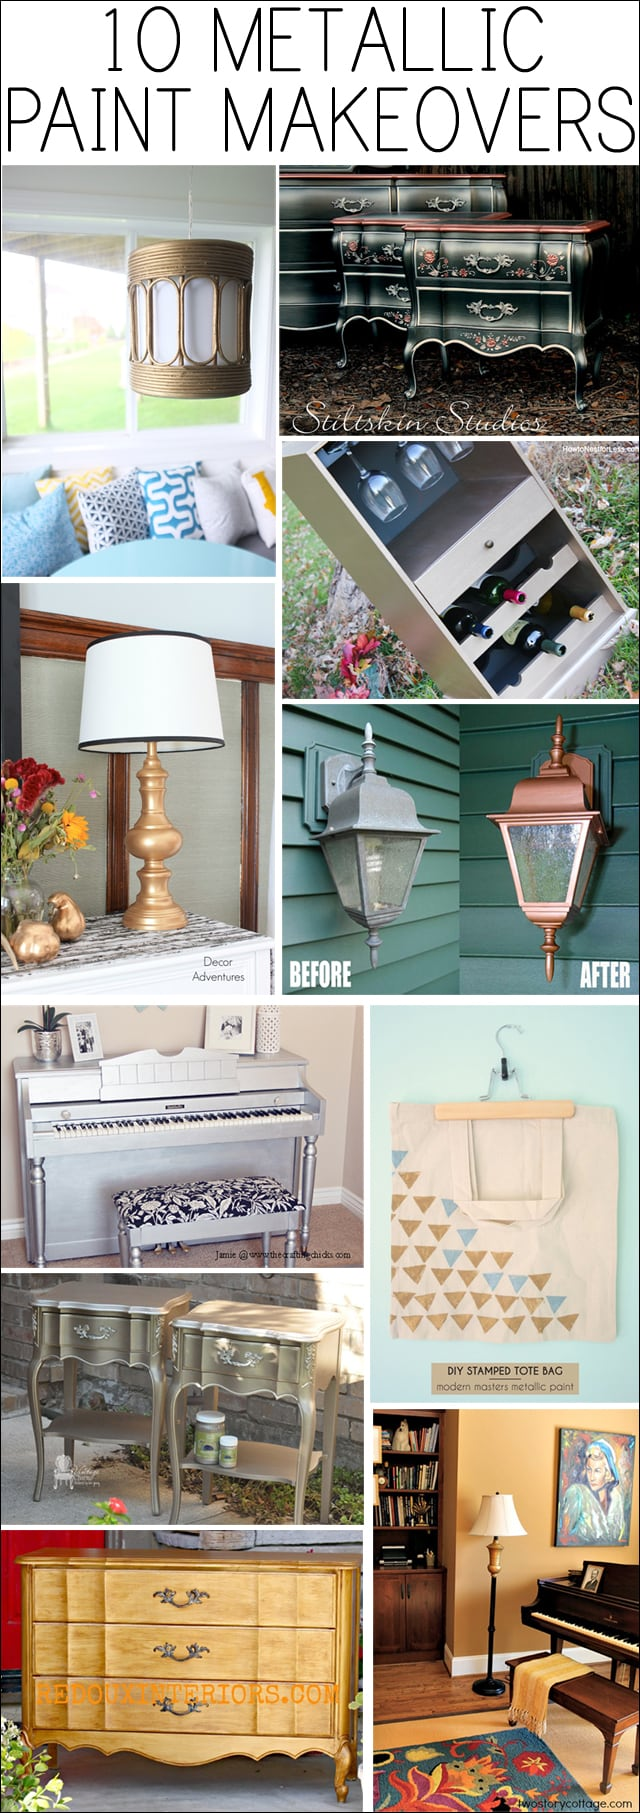 10 metallic paint makeovers